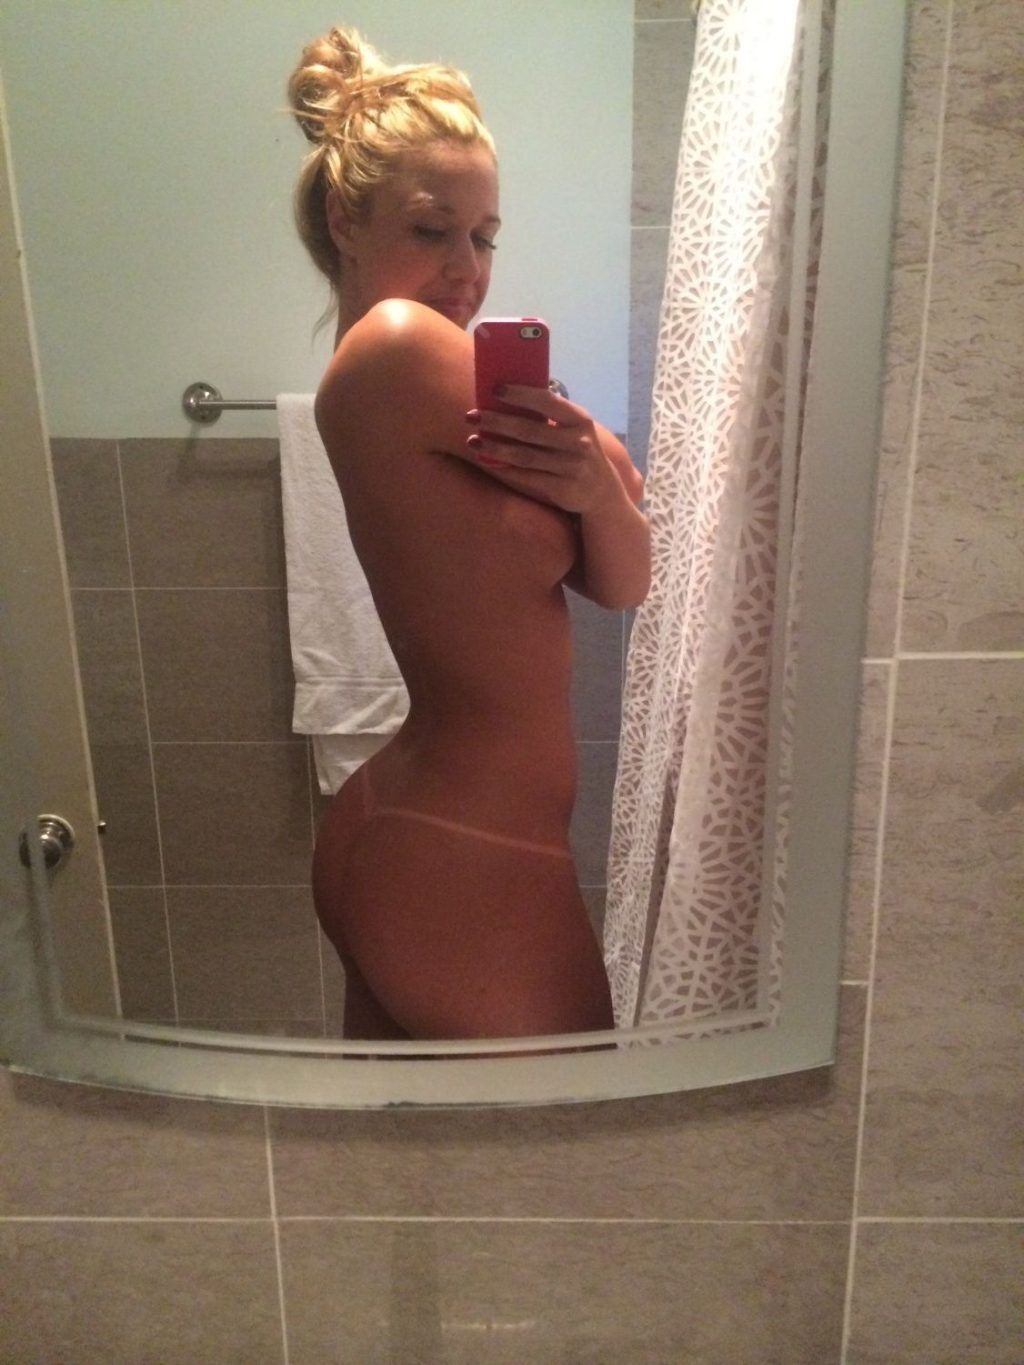 Megan Wilson Nude Leaked The Fappening (53 Photos + Video)